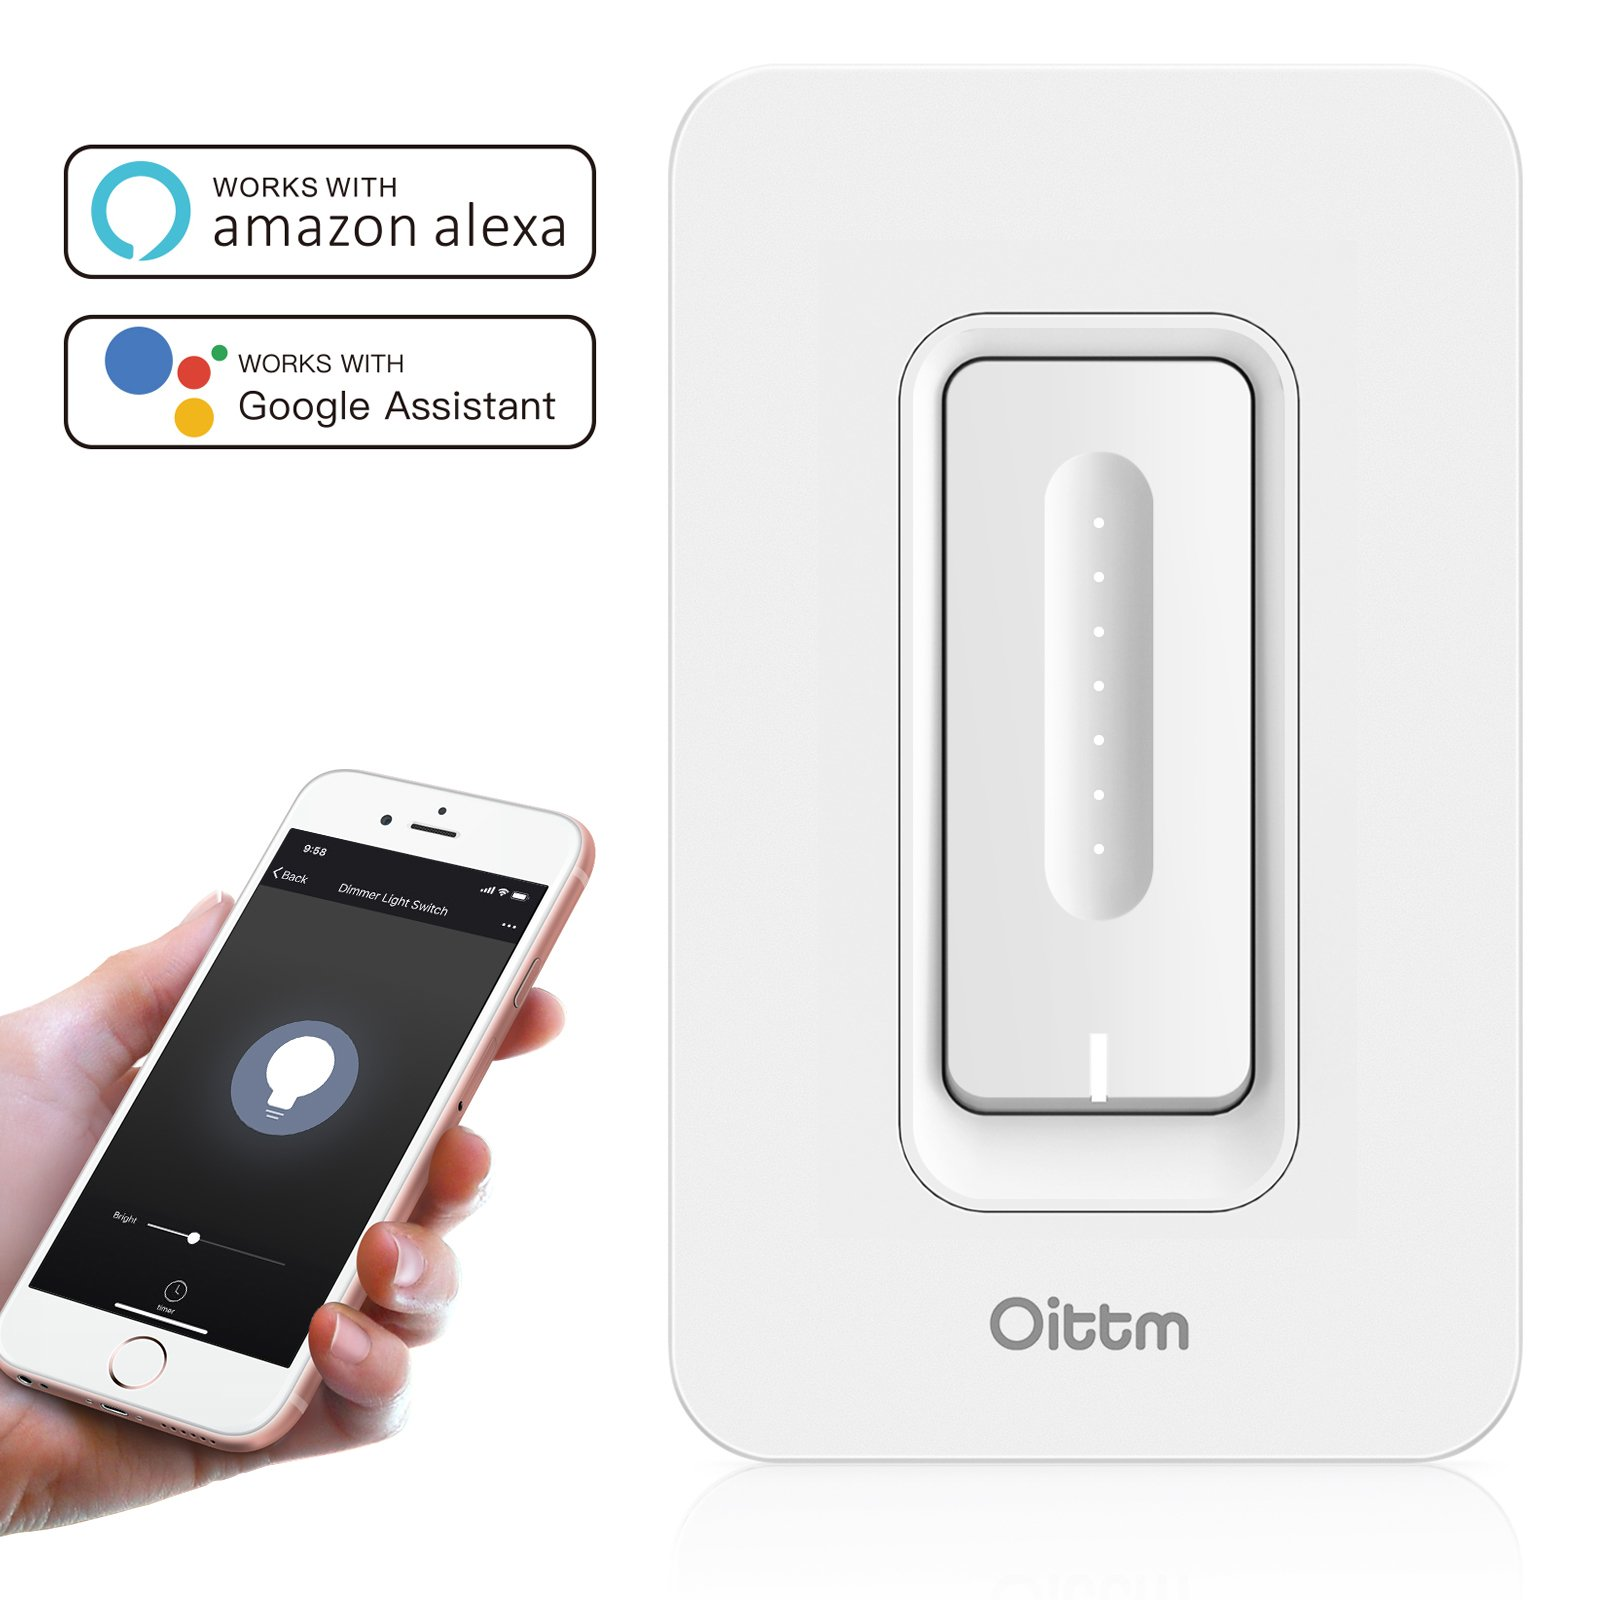 Oittm Dimmer Wi-Fi Light Switch, Smart Dimmer Switch Lighting Control from Anywhere, No Hub Required, 400W Incandescent/150W LED (Replace Single-Pole Only), Works With Alexa and Google Assistant